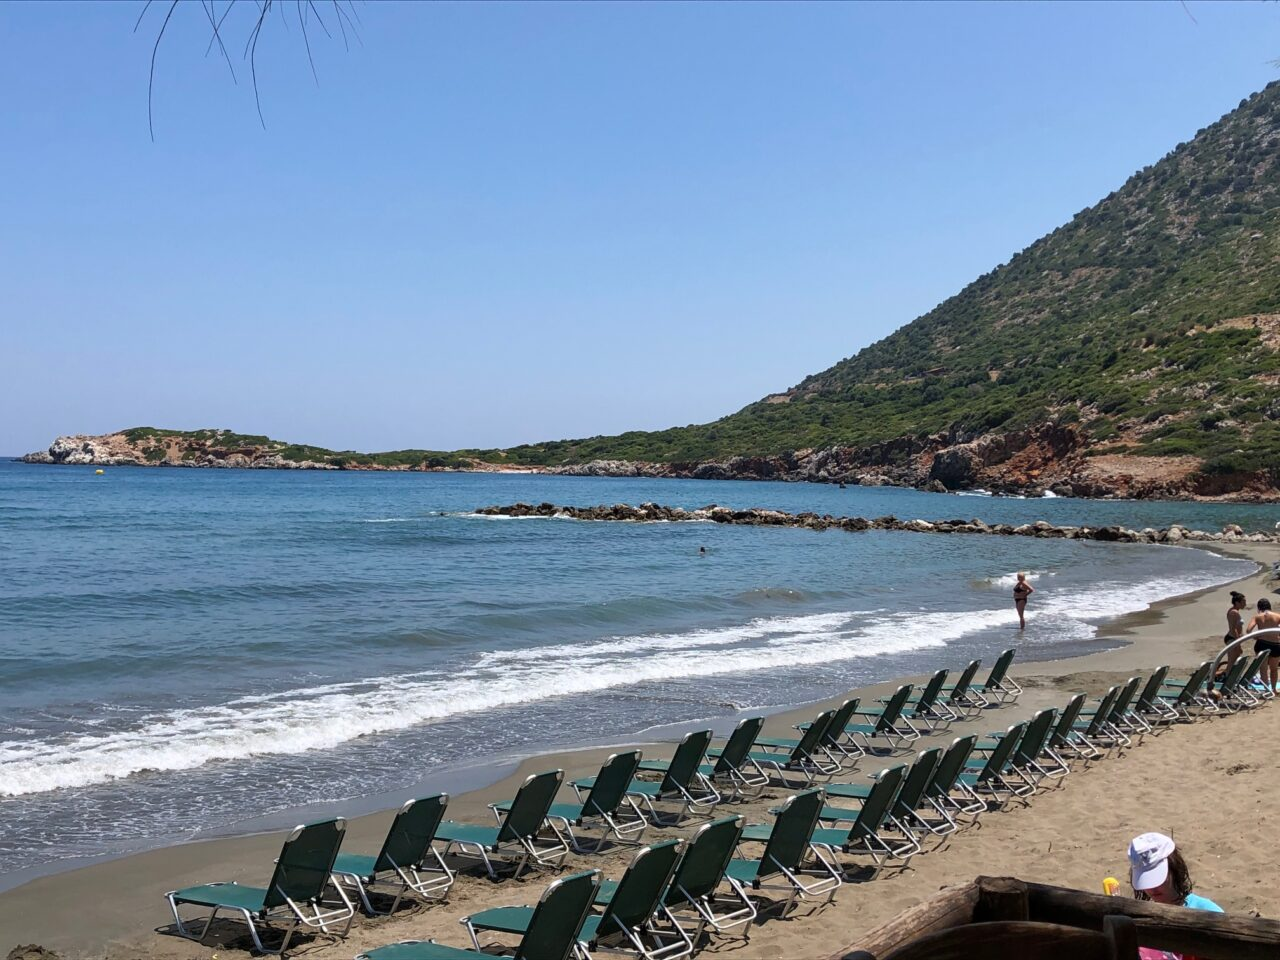 Photo of Cretan Mountain and Beach From the Personal Collection of Helene and Zaf